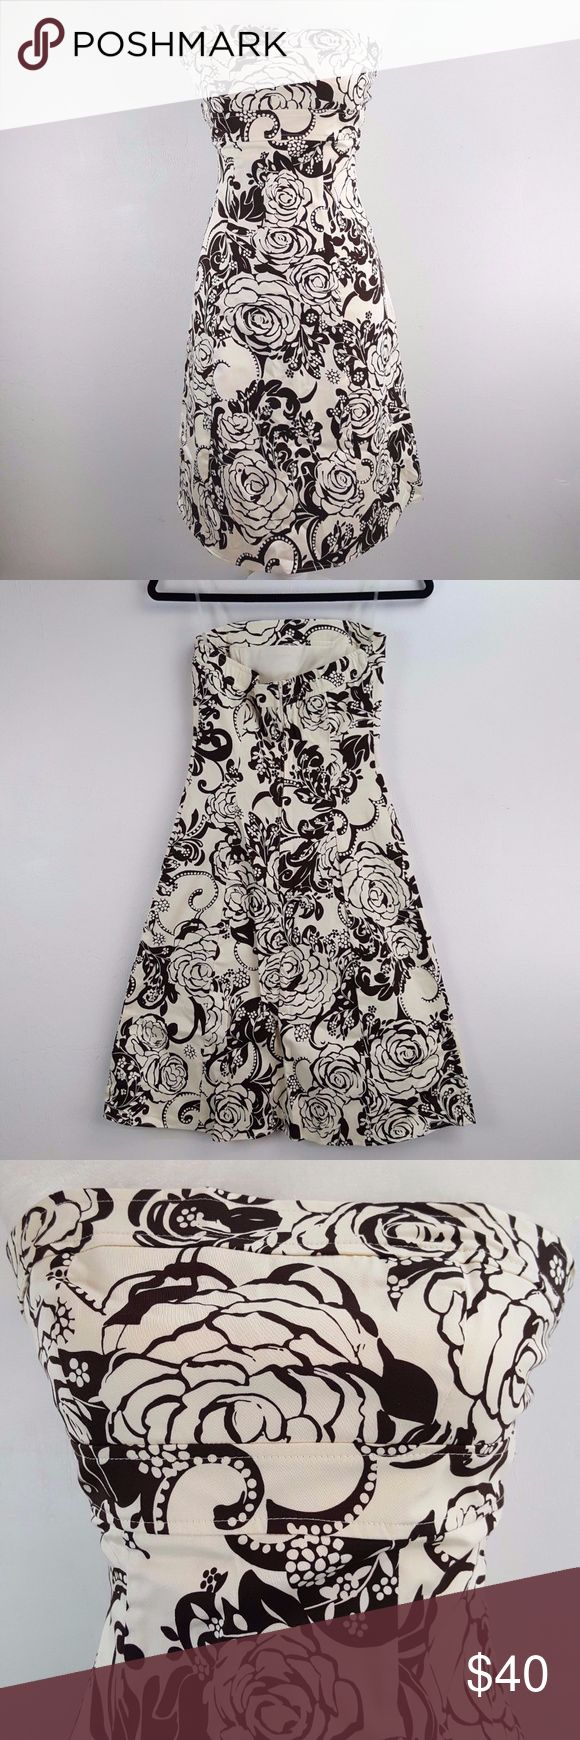 """B.Smart Ivory & Brown Roses Strapless Dress 3/4 This B. Smart dress is a pretty cream with dark chocolate brown rose pattern in a woman's size 3/4. See measurements for your best fit.  Perfect for Summer! Clear straps allow for wearing strapless, or with straps for support 97% Cotton, 3% Spandex, Stretch fabric content provides a superior fit $70 MSRP CONDITION: Brand new with tags MEASUREMENTS: all taken with garment laid flat  bust from armpit to armpit: 13x2=26"""" waist: 14""""x2=28"""" total…"""